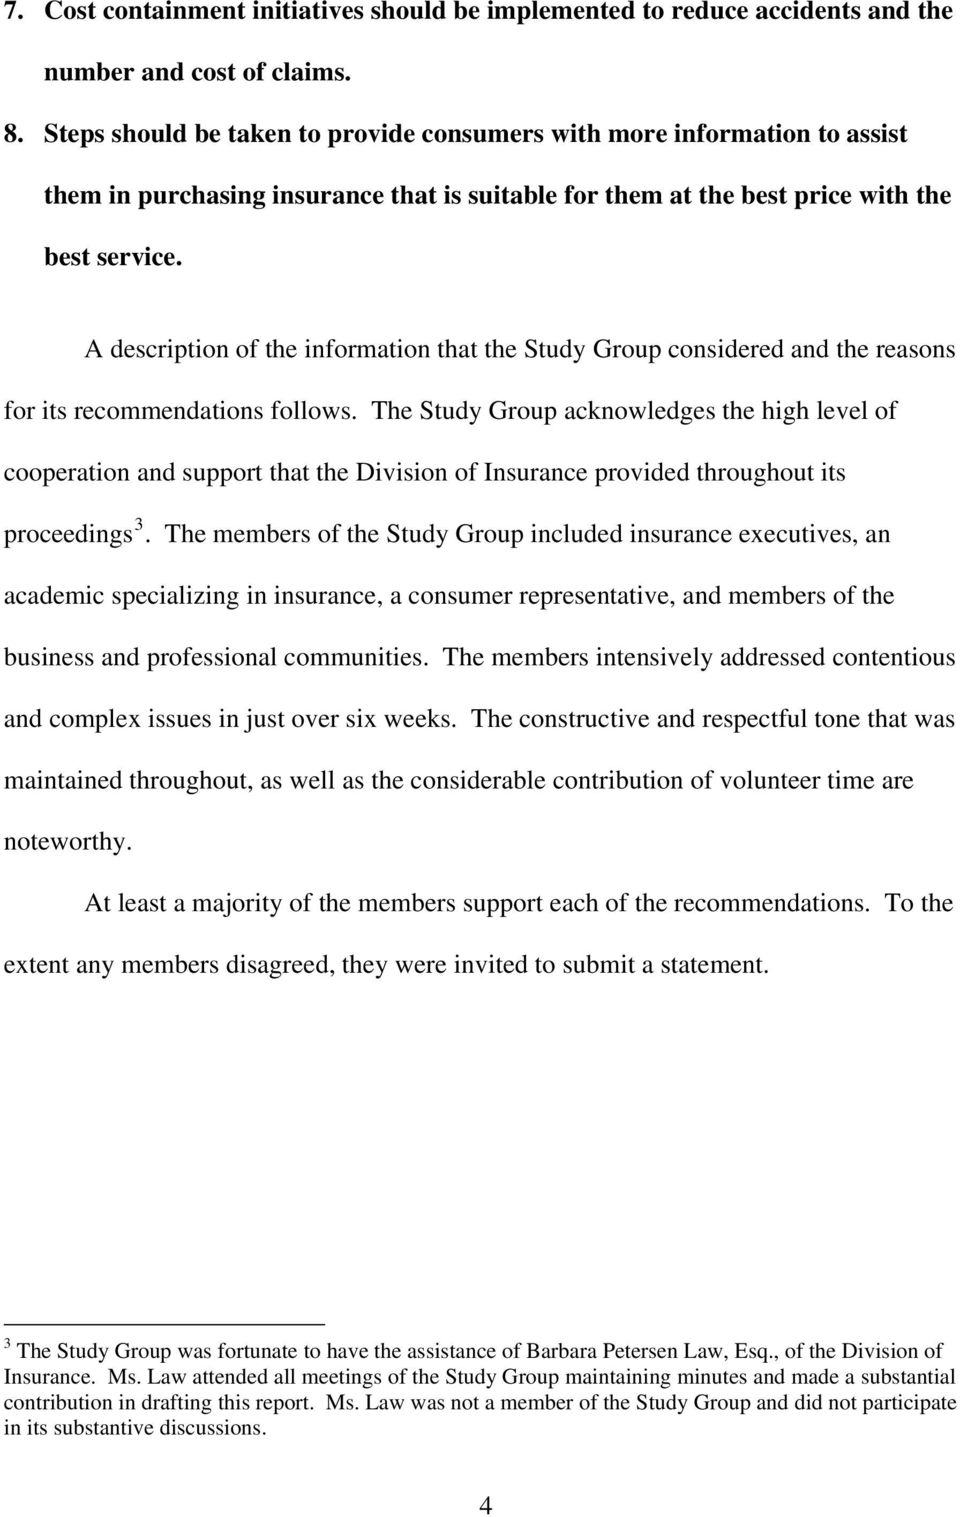 A description of the information that the Study Group considered and the reasons for its recommendations follows.